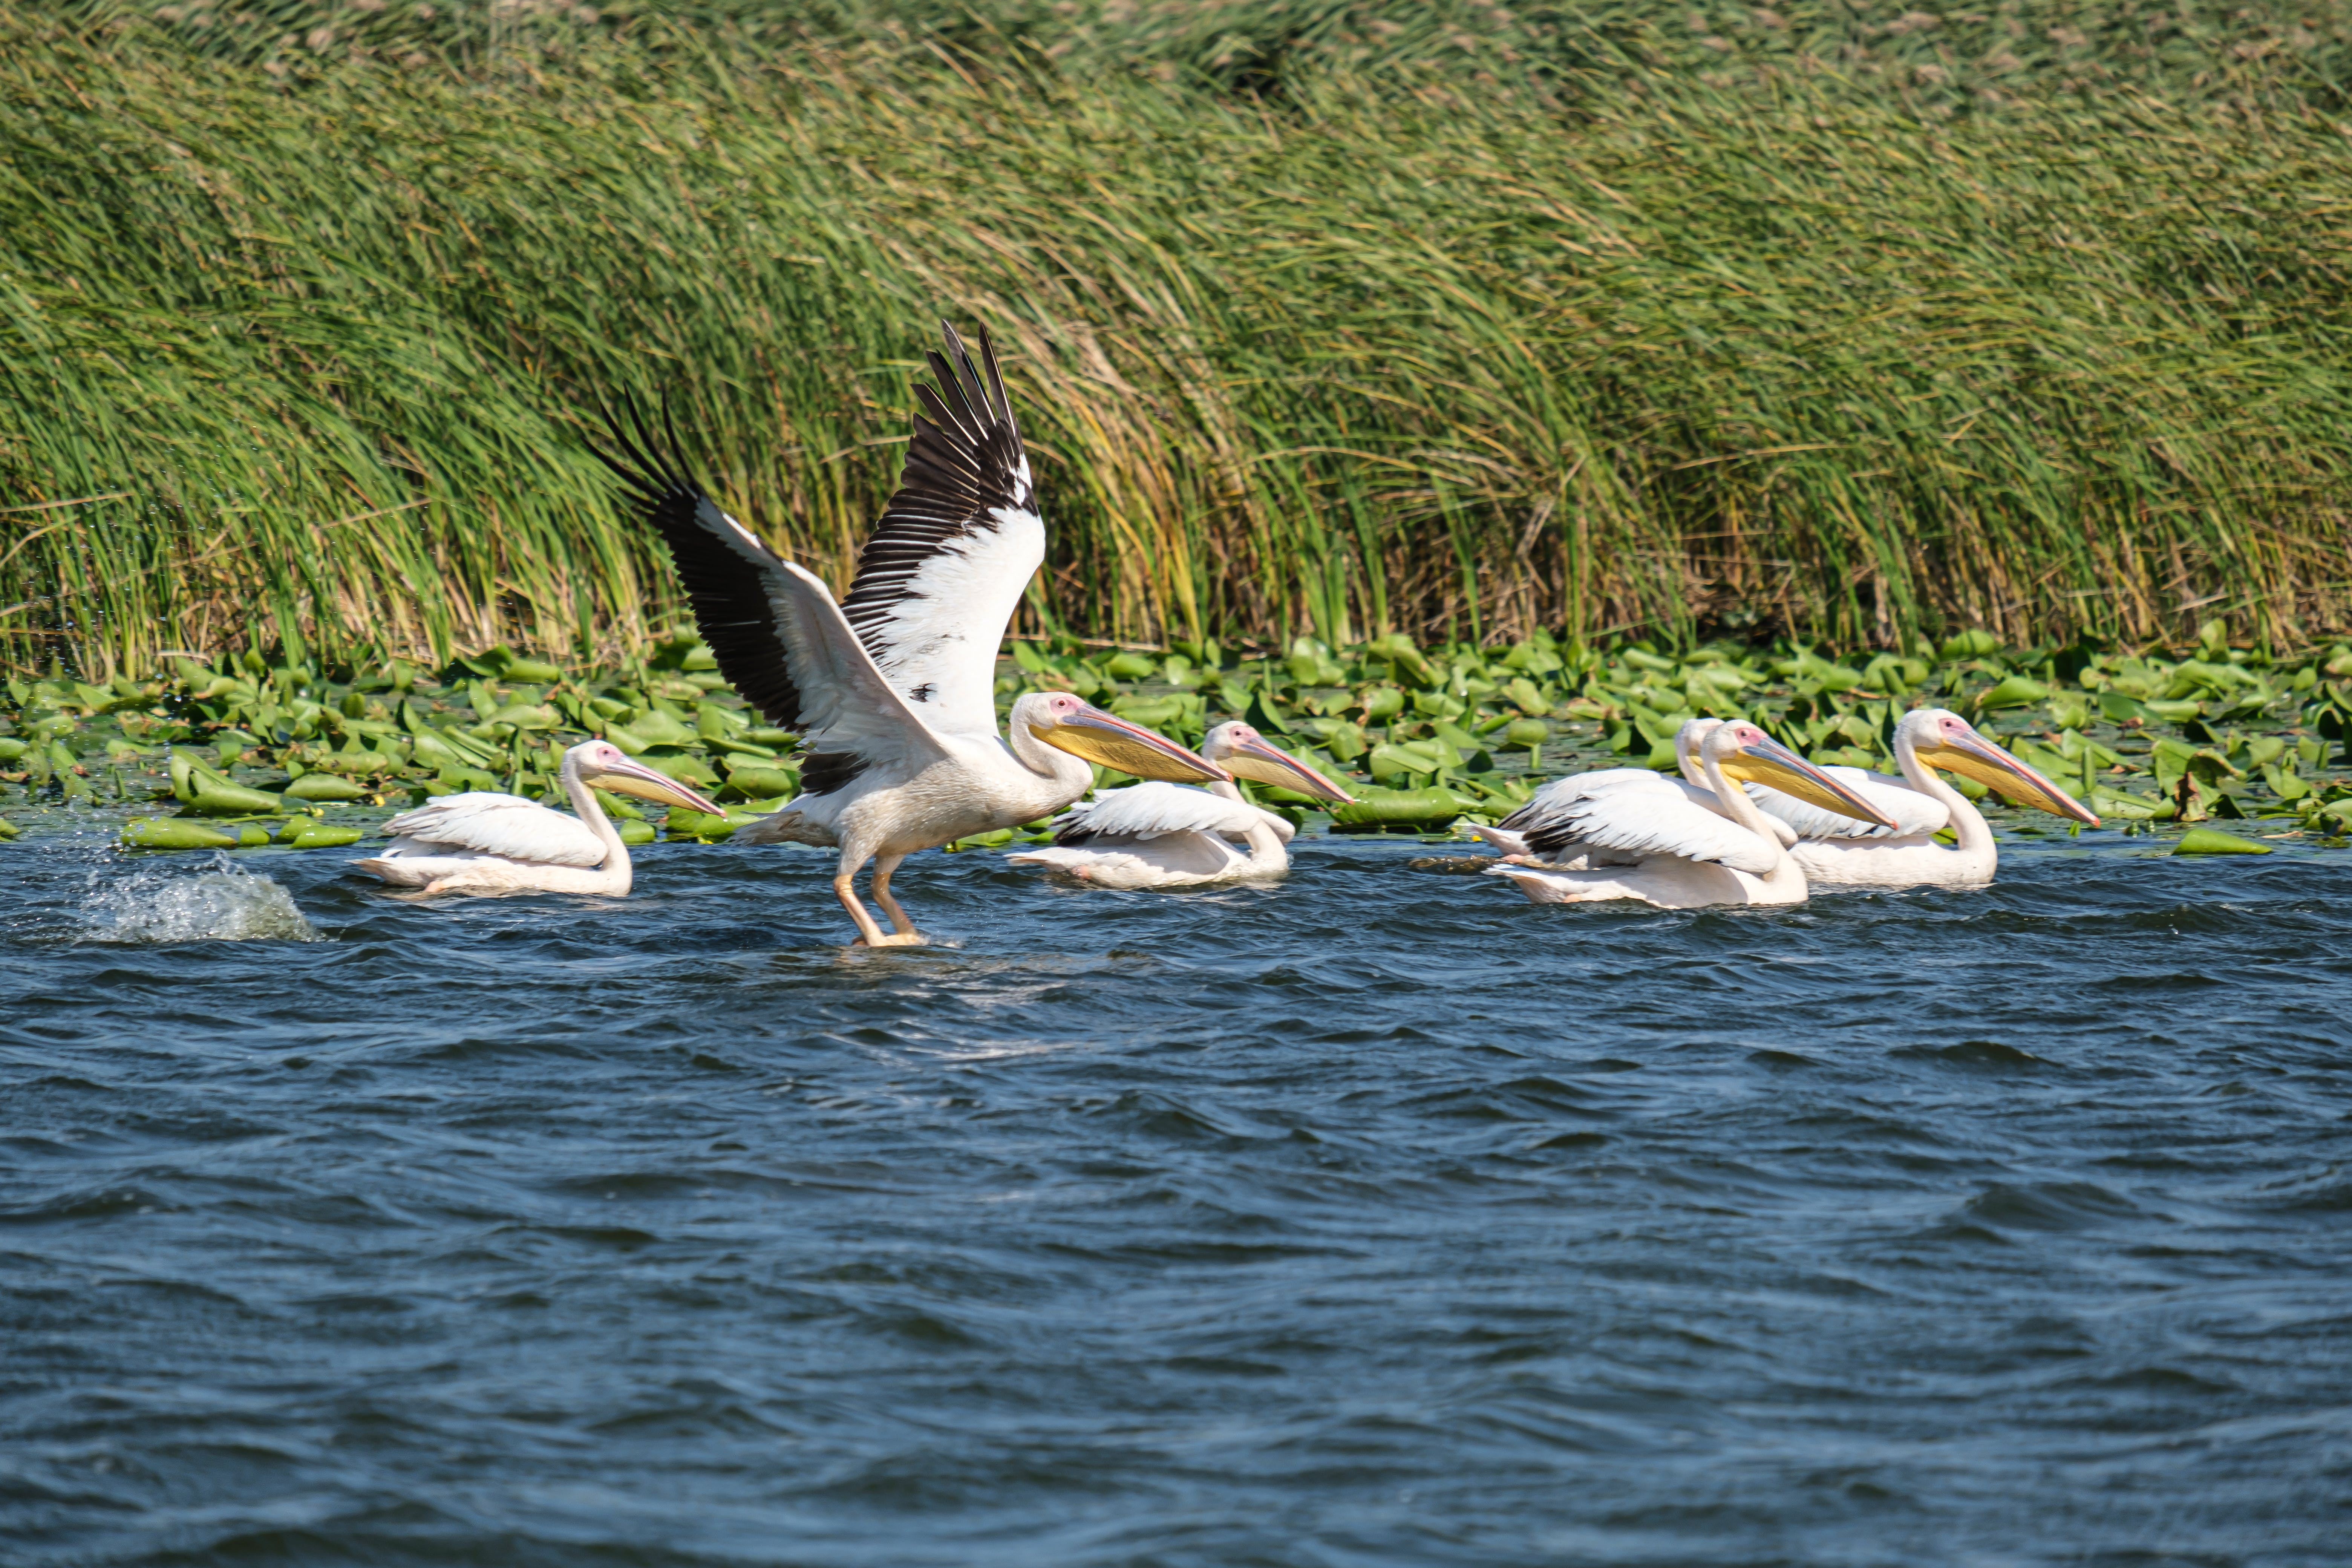 White Pelican on Green Grass Near Body of Water